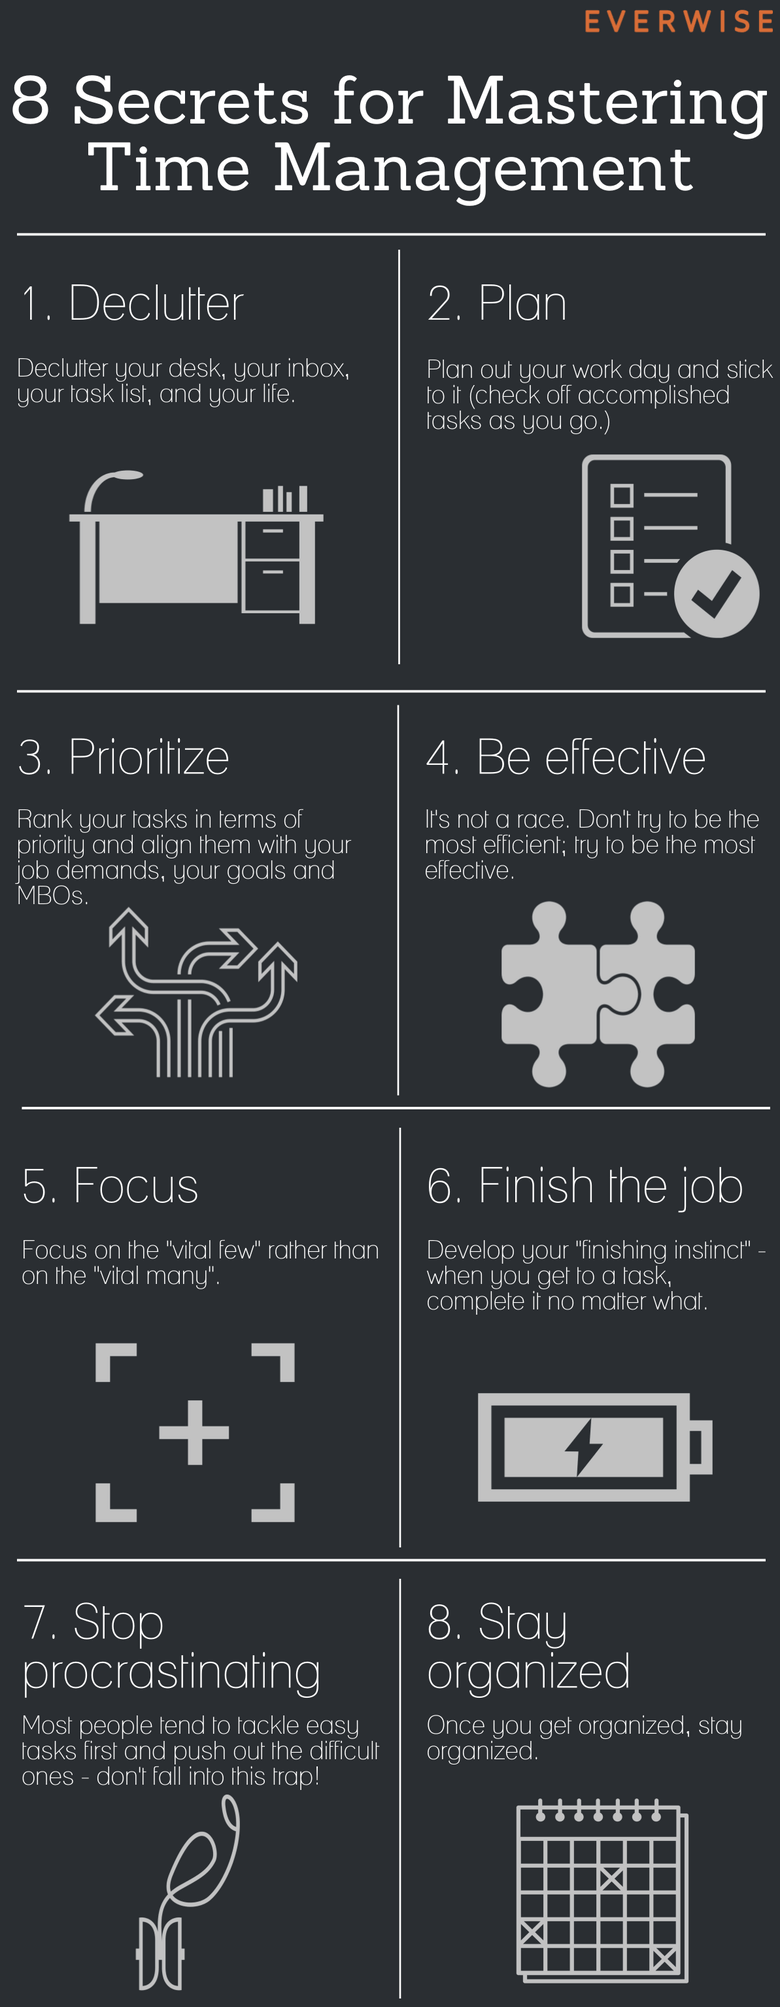 time-management-tips-infographic